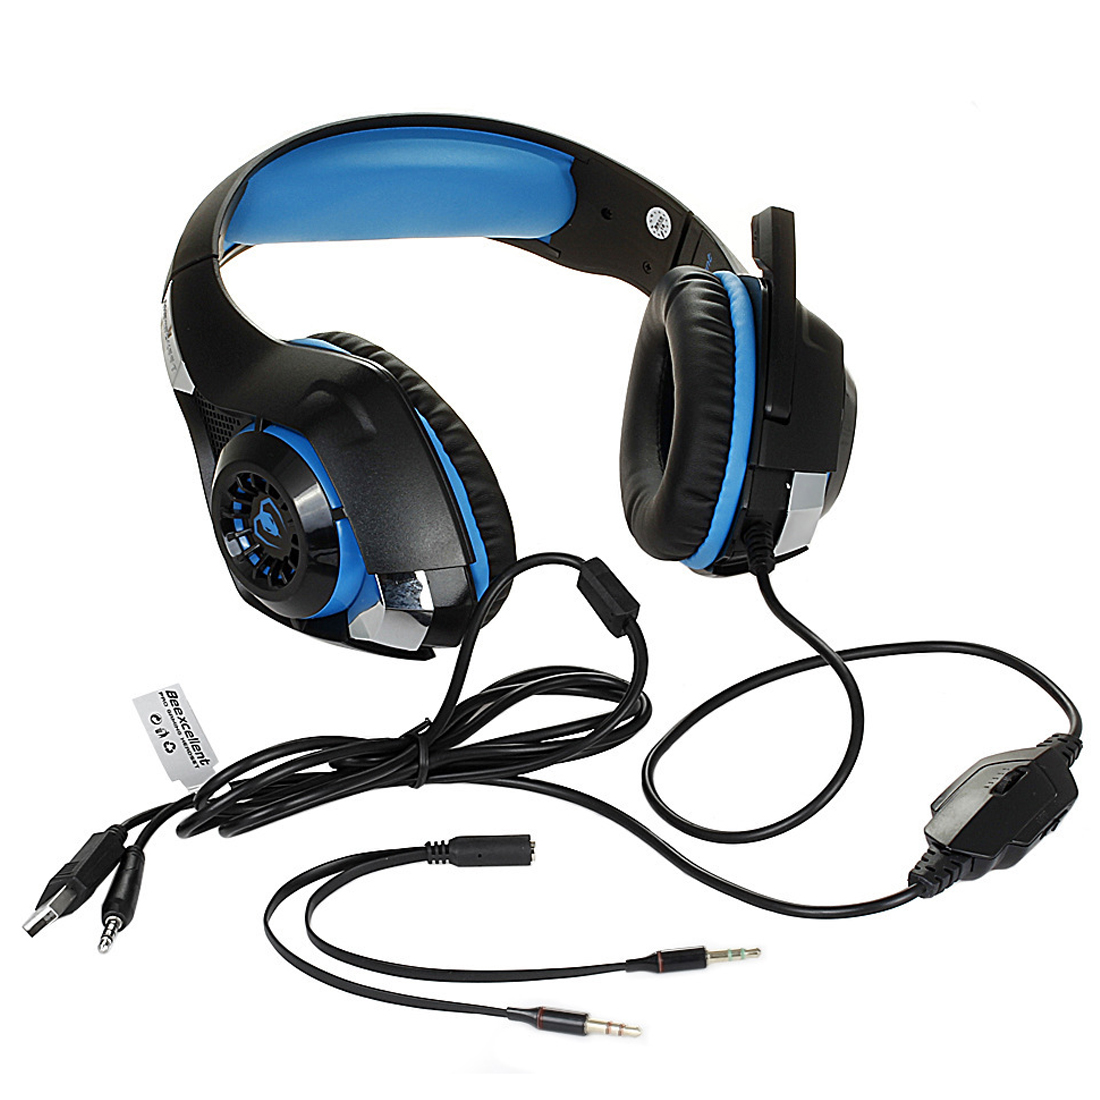 100% New Gaming Headphones For Mobile Phone Ps4/Psp/Pc 3.5Mm Wired Headphones With Microphone Led Lamp Noise Canceling Headse